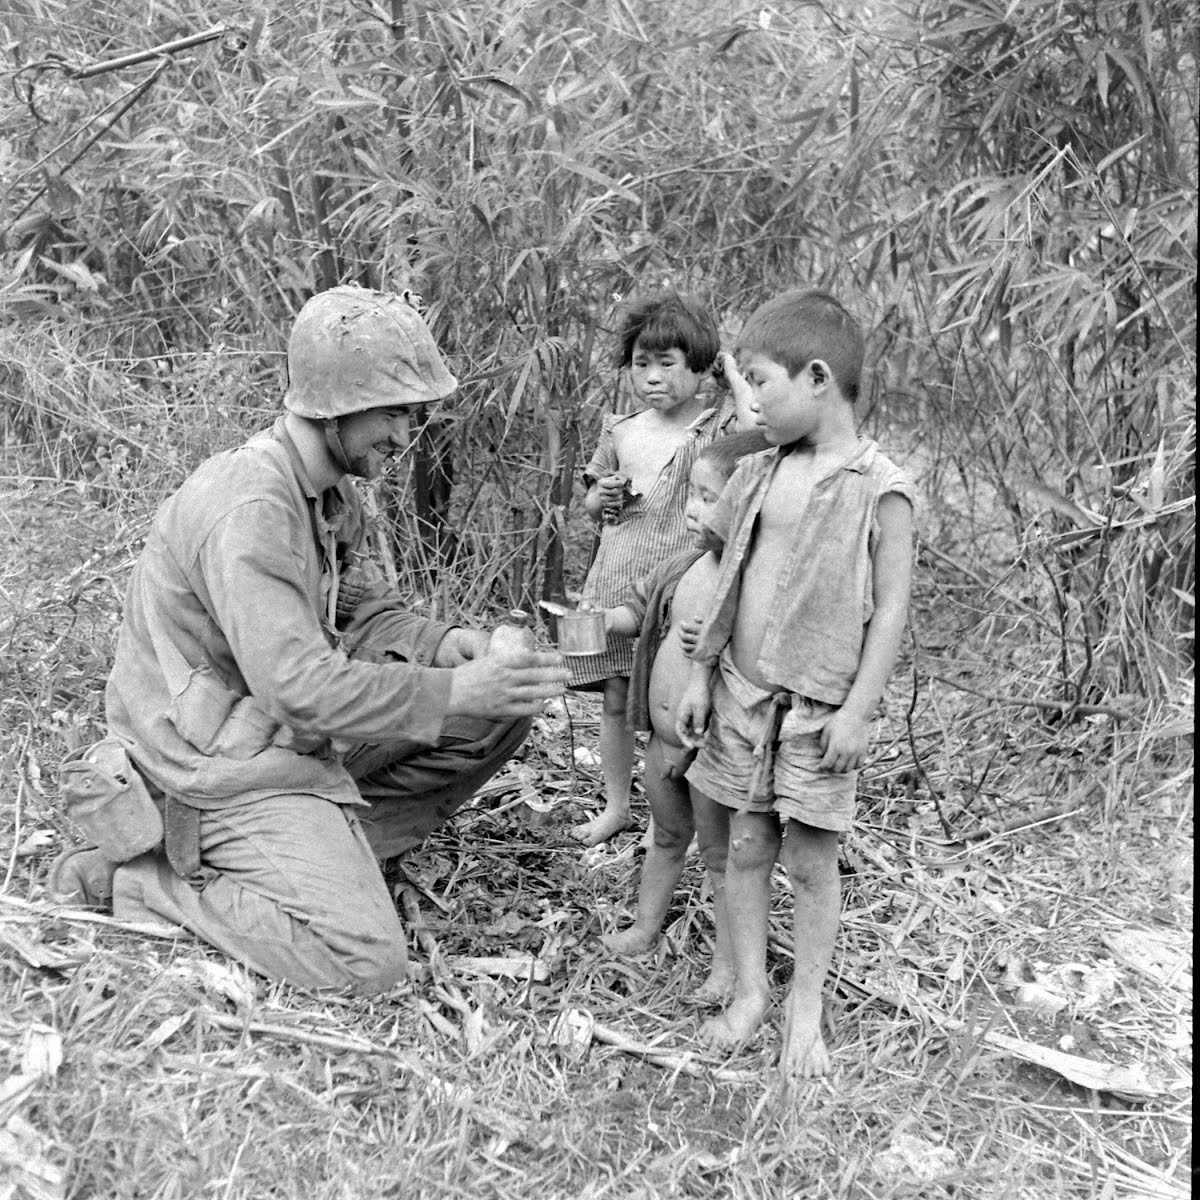 Saipan, Jap Civilians